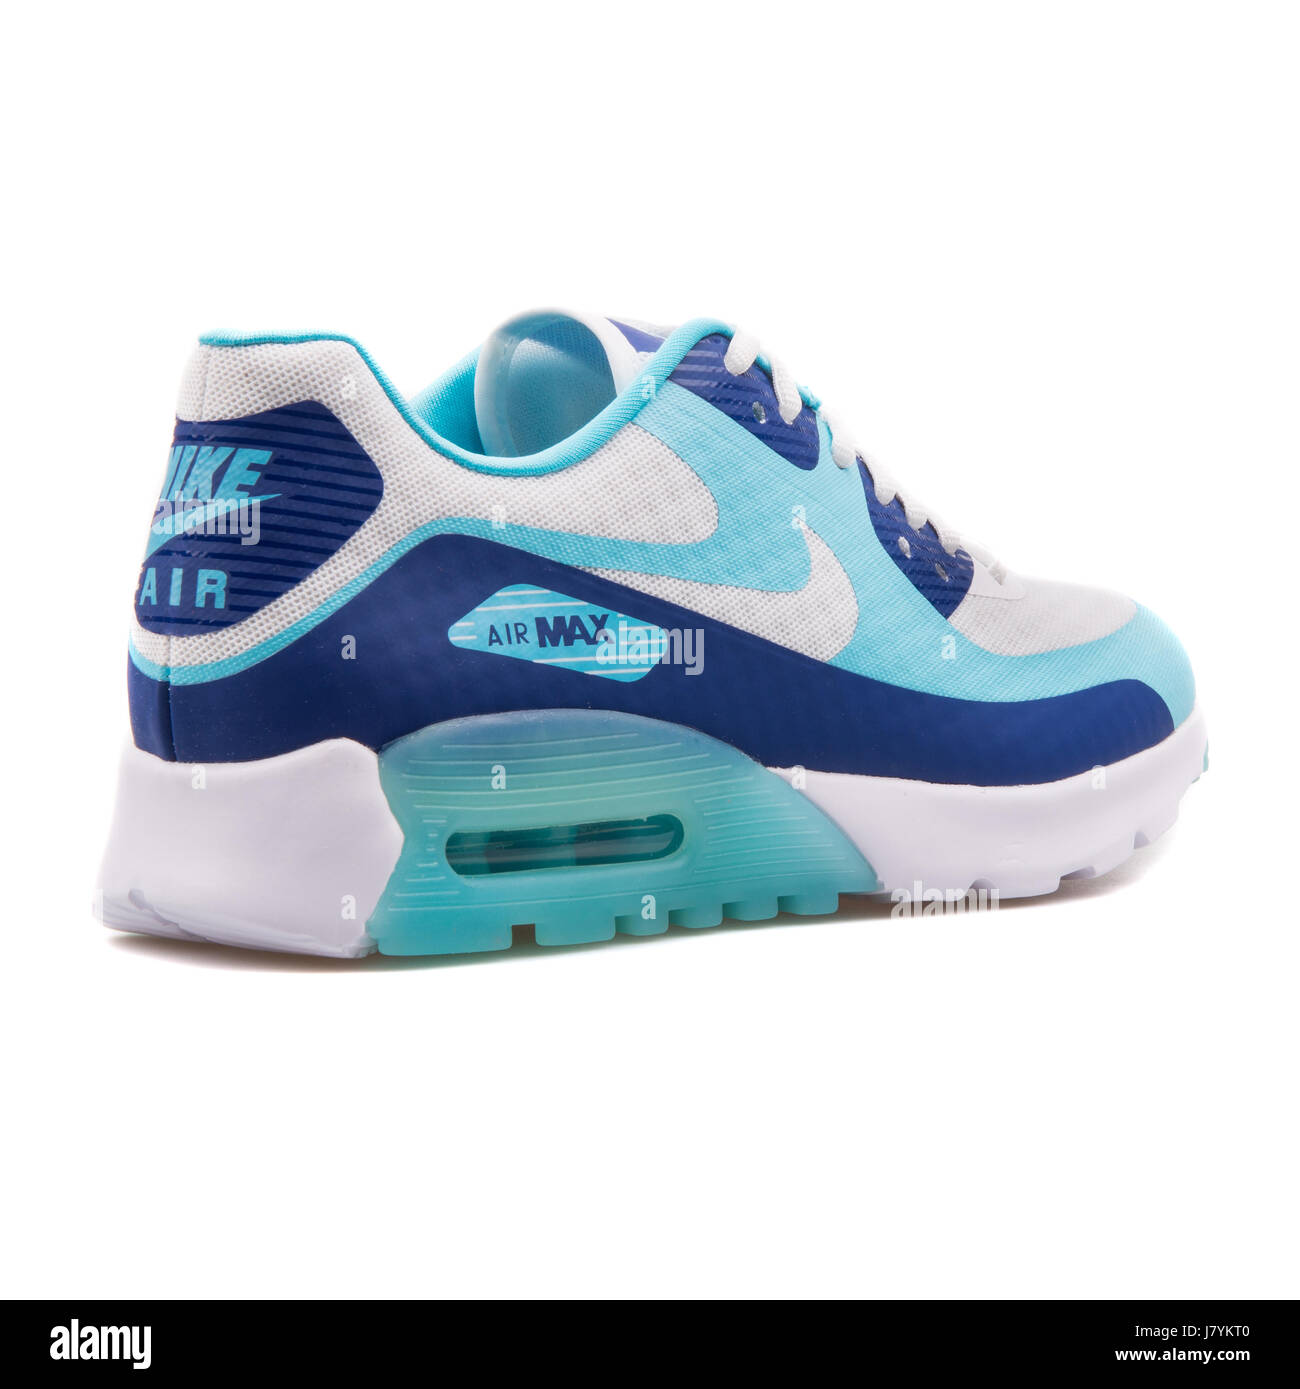 a560ad51 Nike W Air Max 90 Ultra BR Deep Royal Blue, Turquoise and White Women's  Running Sneakers - 725061-400